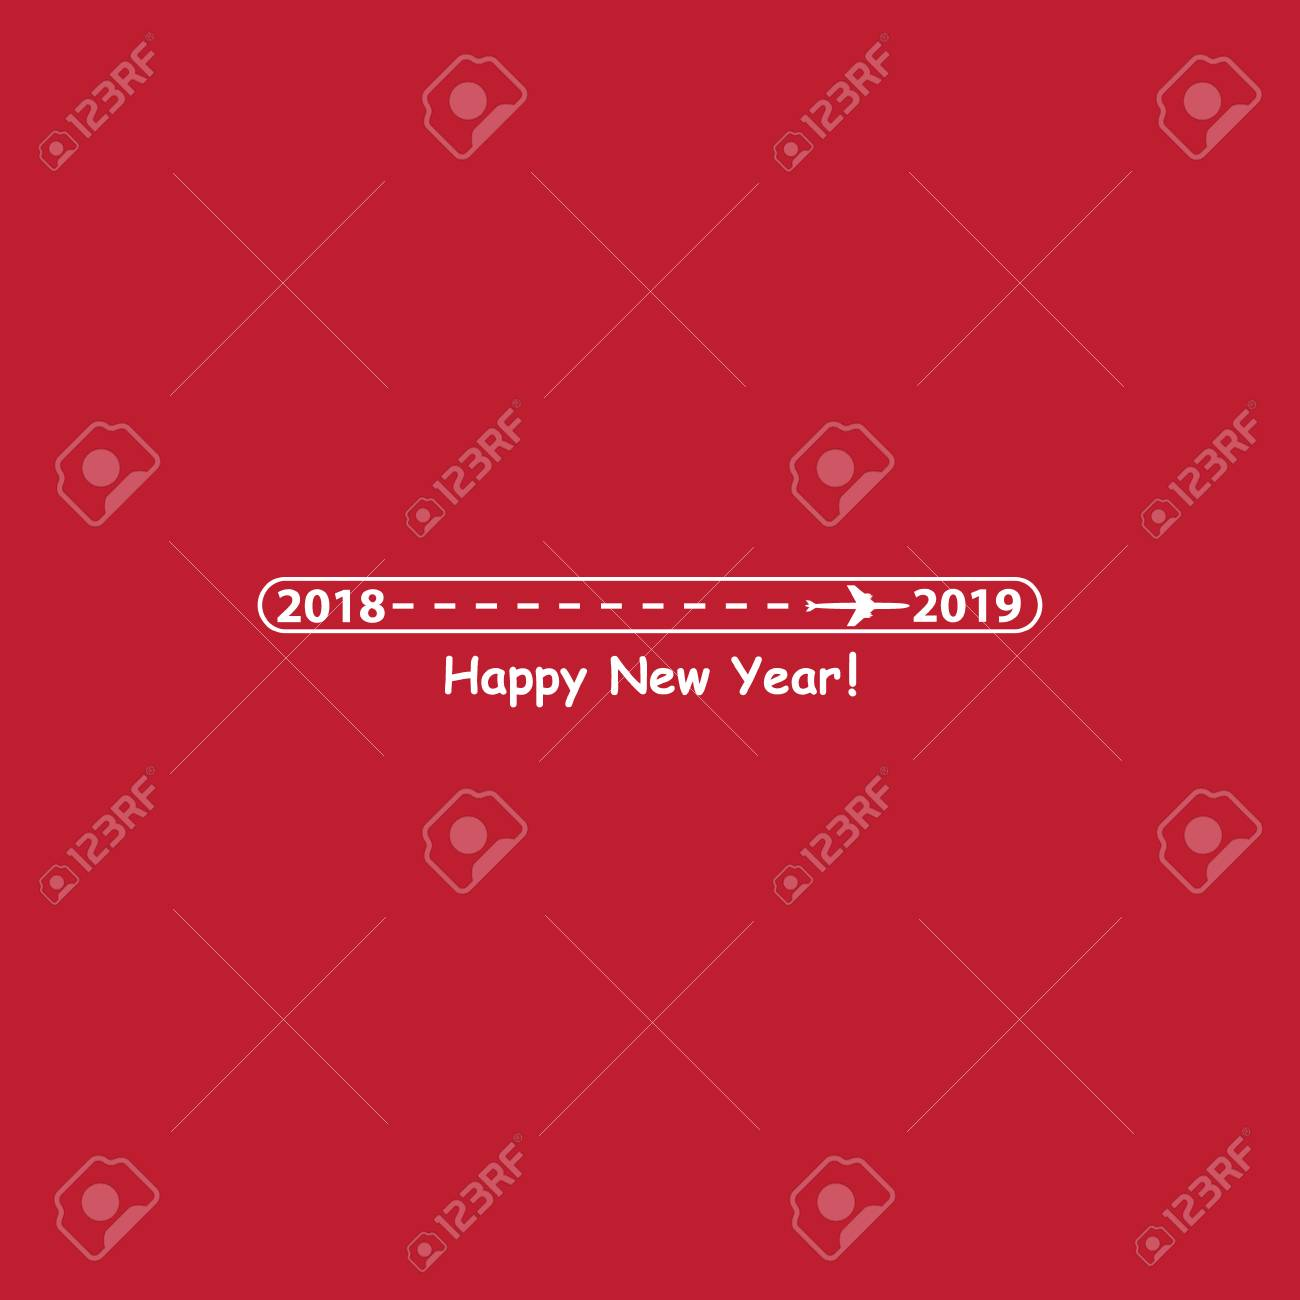 2019 loading picture